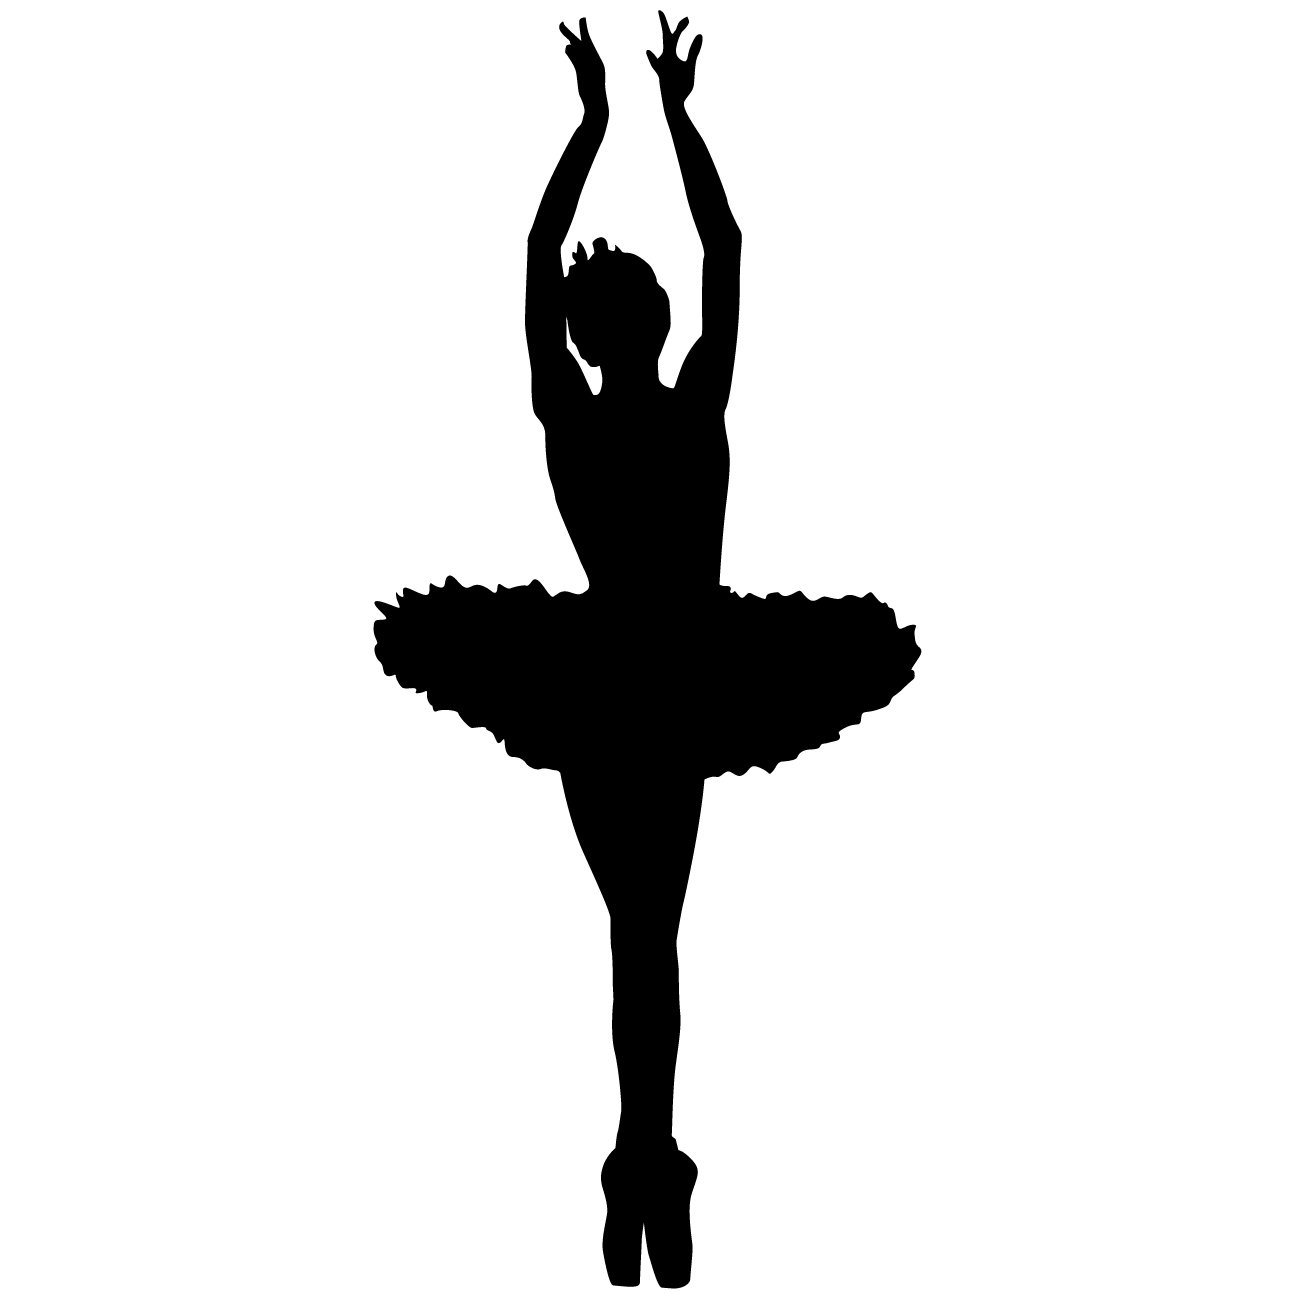 Dancer Ballerina Dance Wall Decal Sticker 4 - Decal Stickers and Mural for Kids Boys Girls Room and Bedroom. Ballet Vinyl Decor Wall Art for Home Decor and Decoration - Dancer Ballet Silhouette Mural